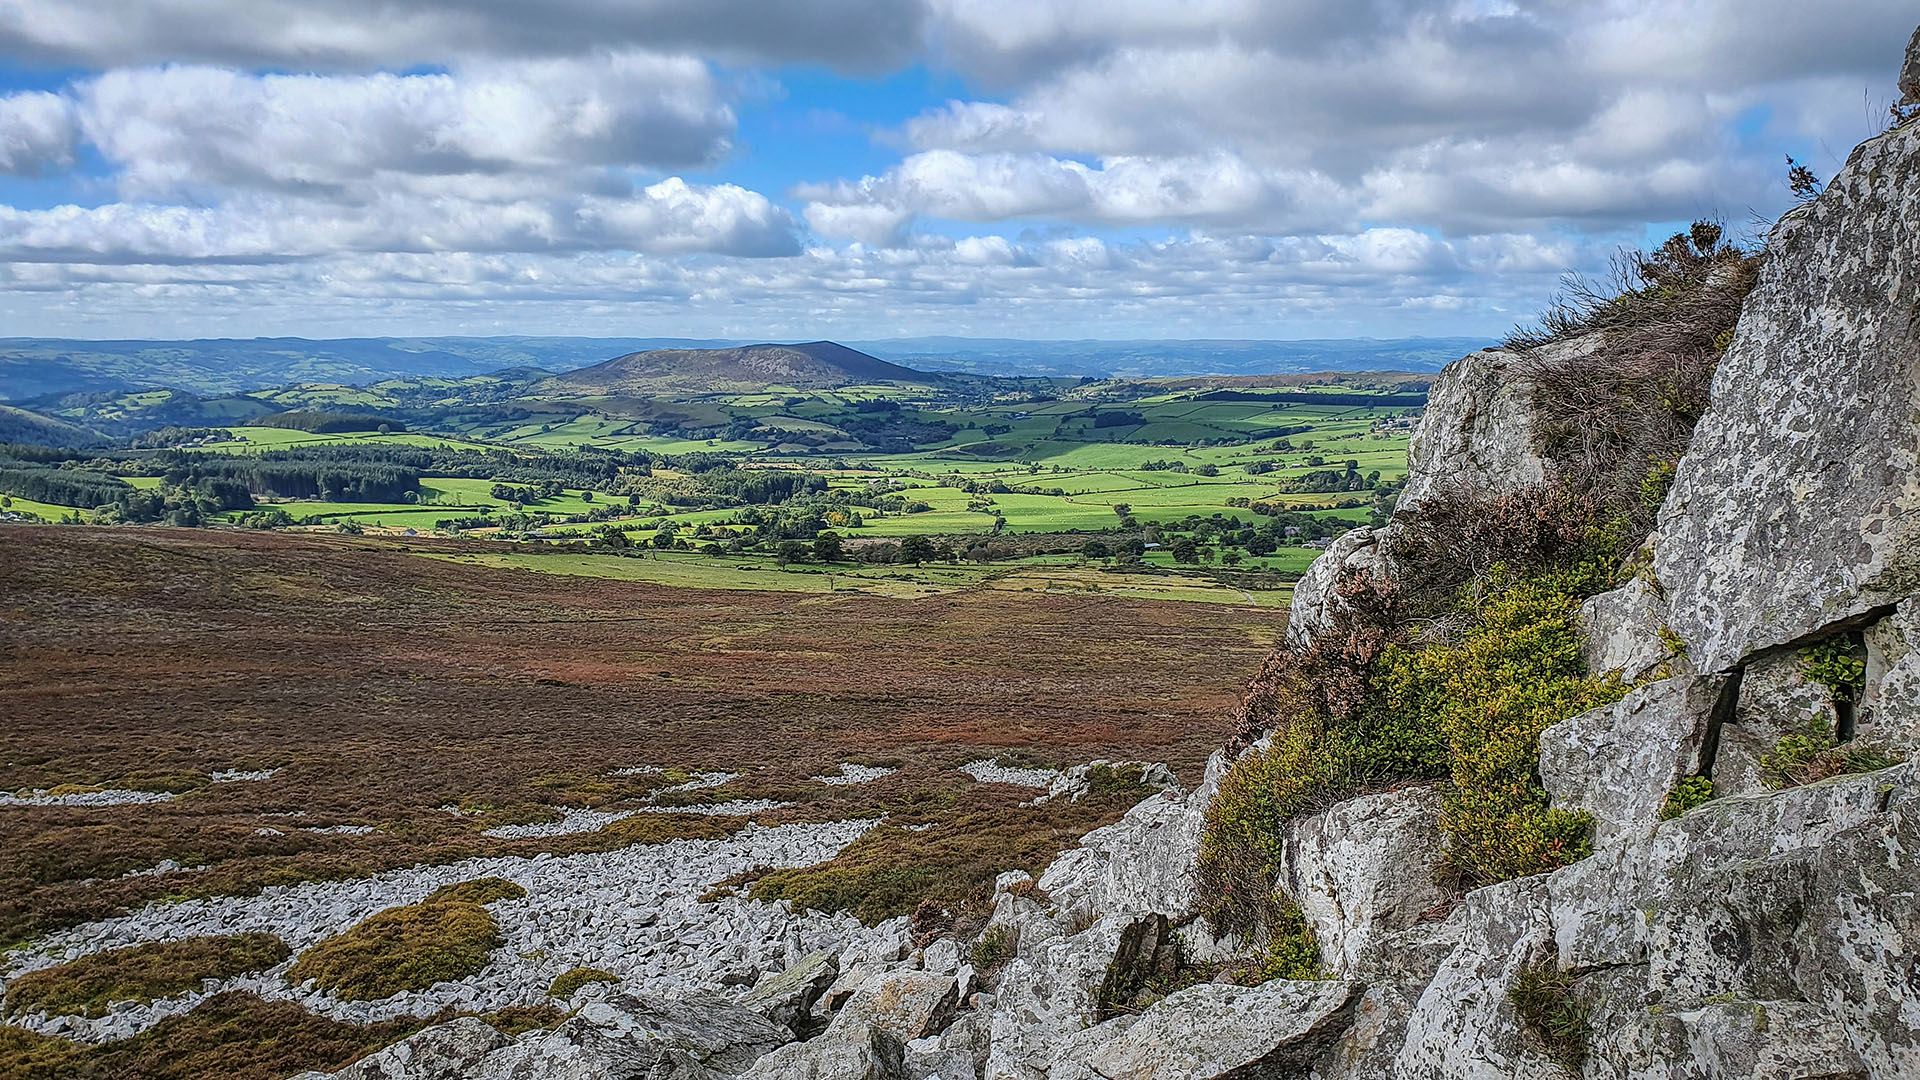 Geology of the Stiperstones - Ordovician Quartzite shattered during the last Ice Age leaving piles of scree below the rocky outcrops